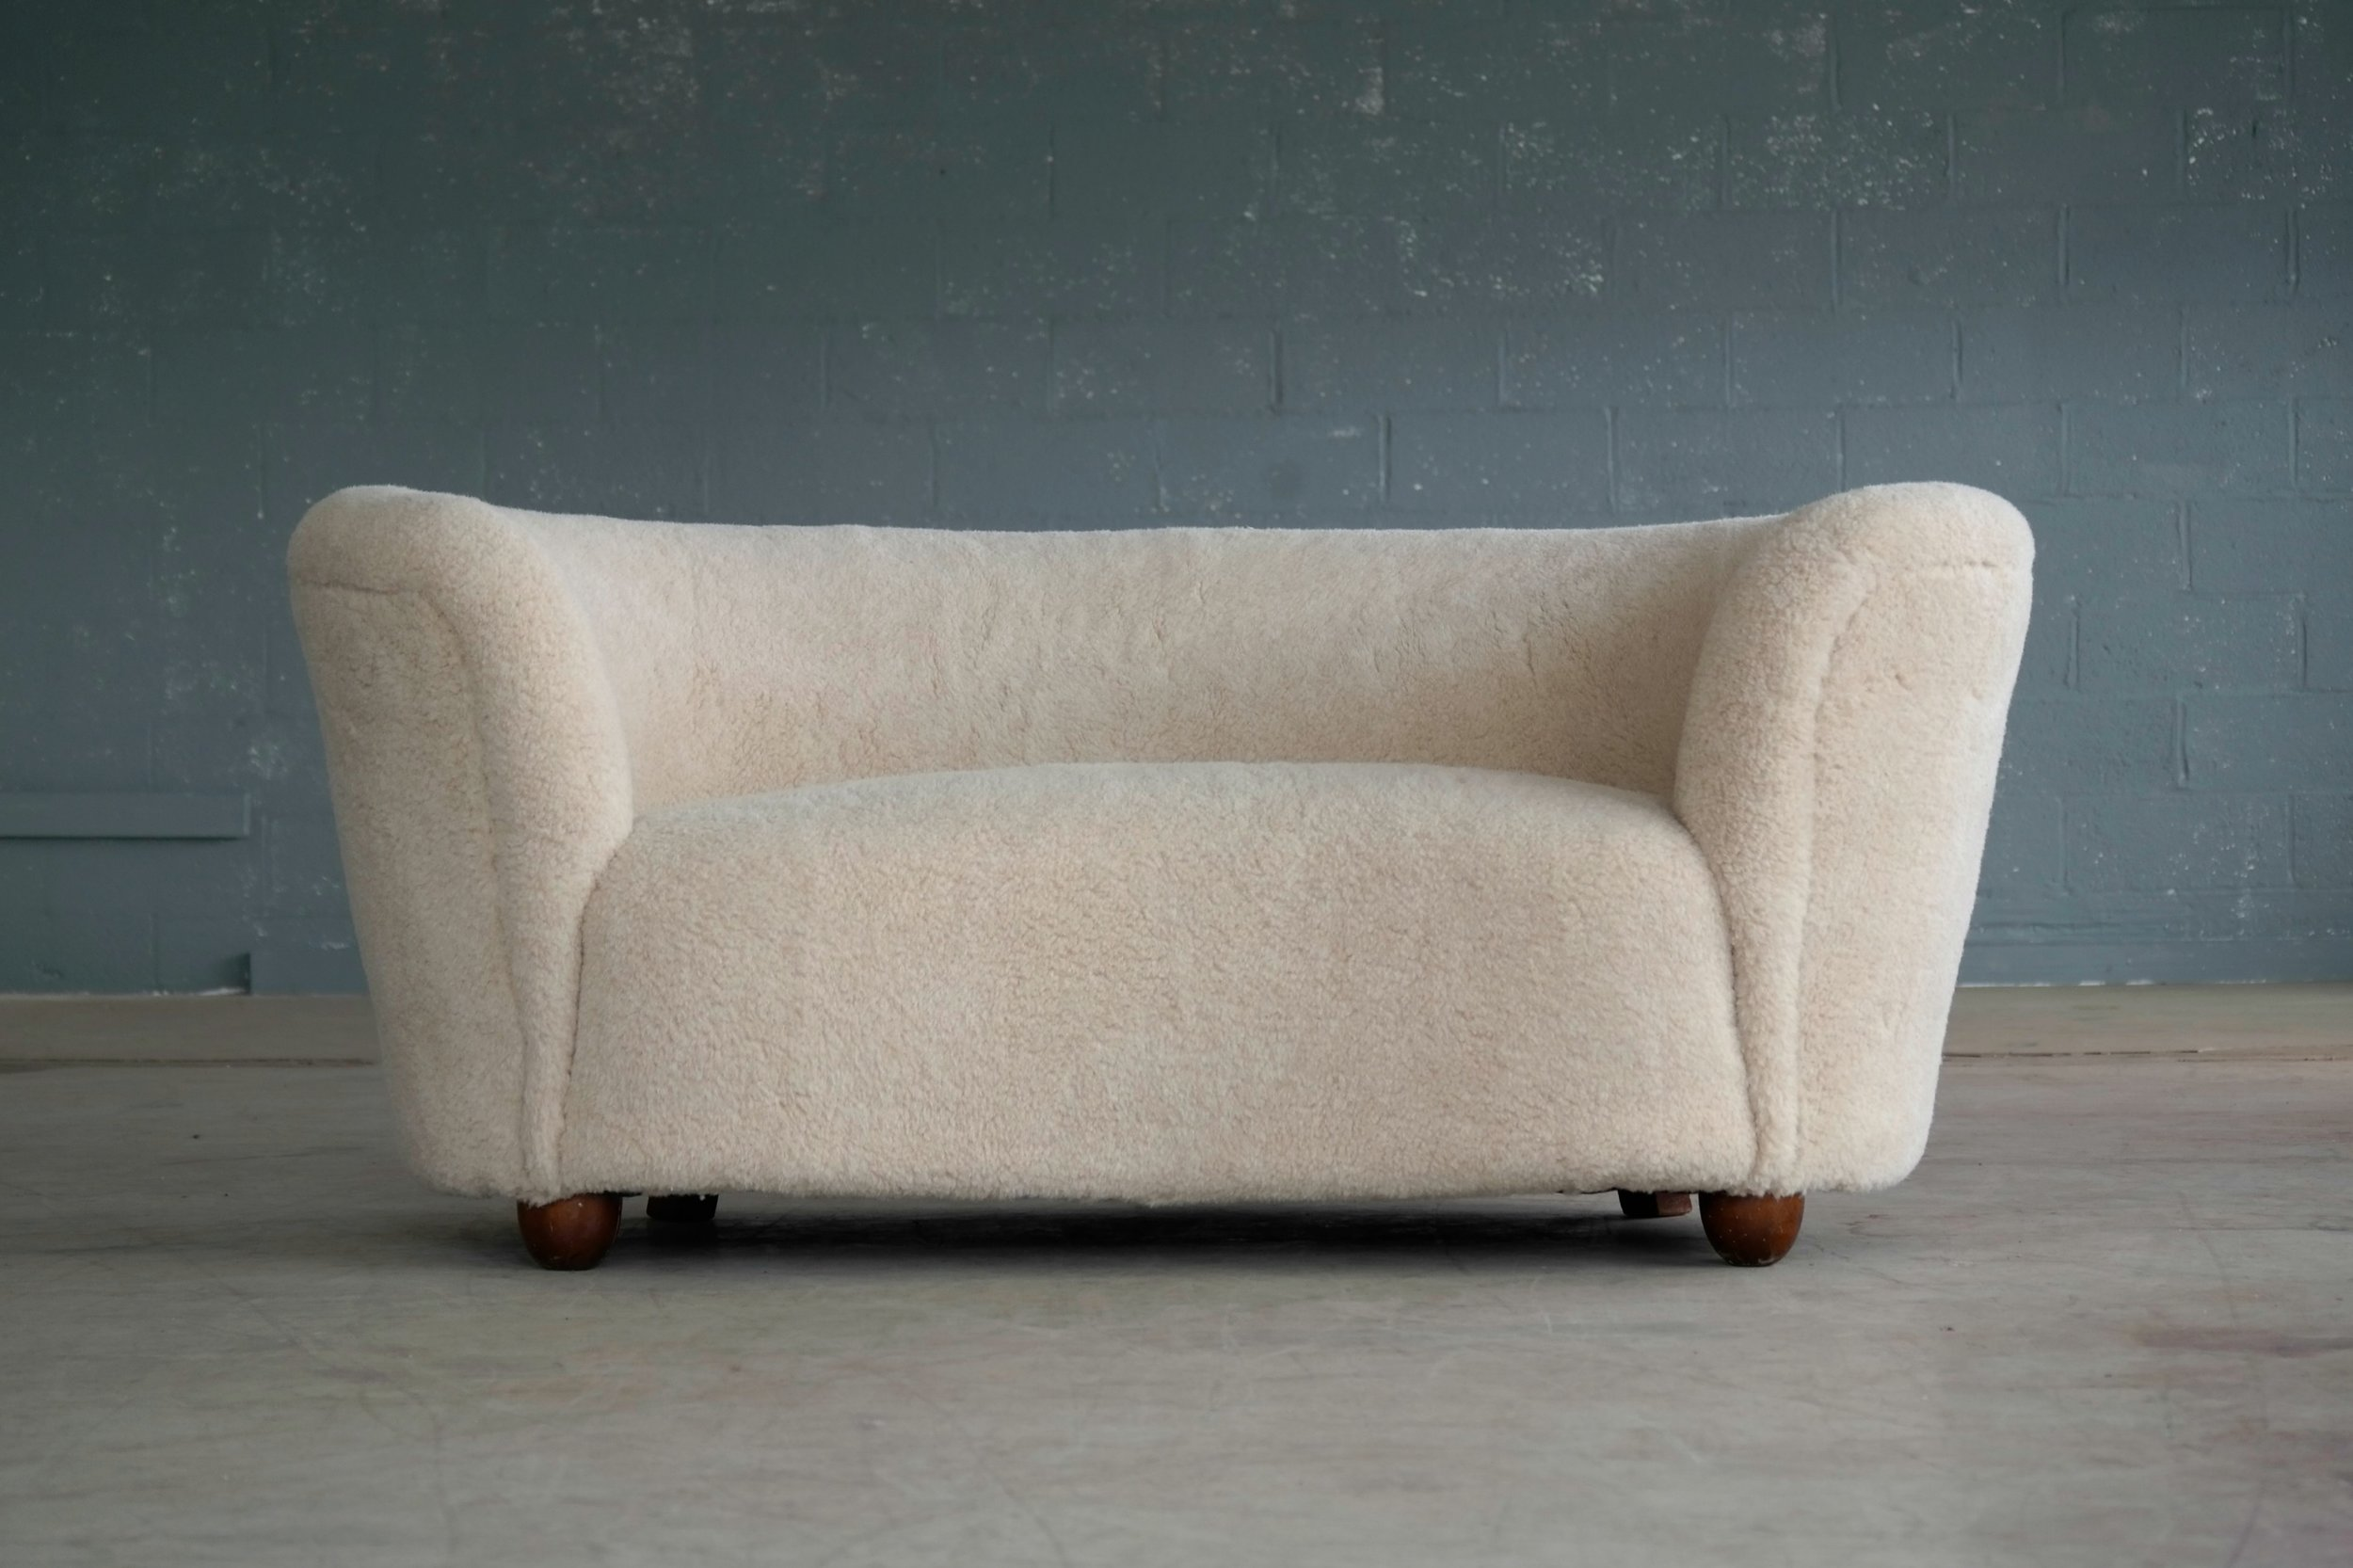 Viggo Boesen Style Curved Sofa or Loveseat in Lambswool Attributed to Slagelse